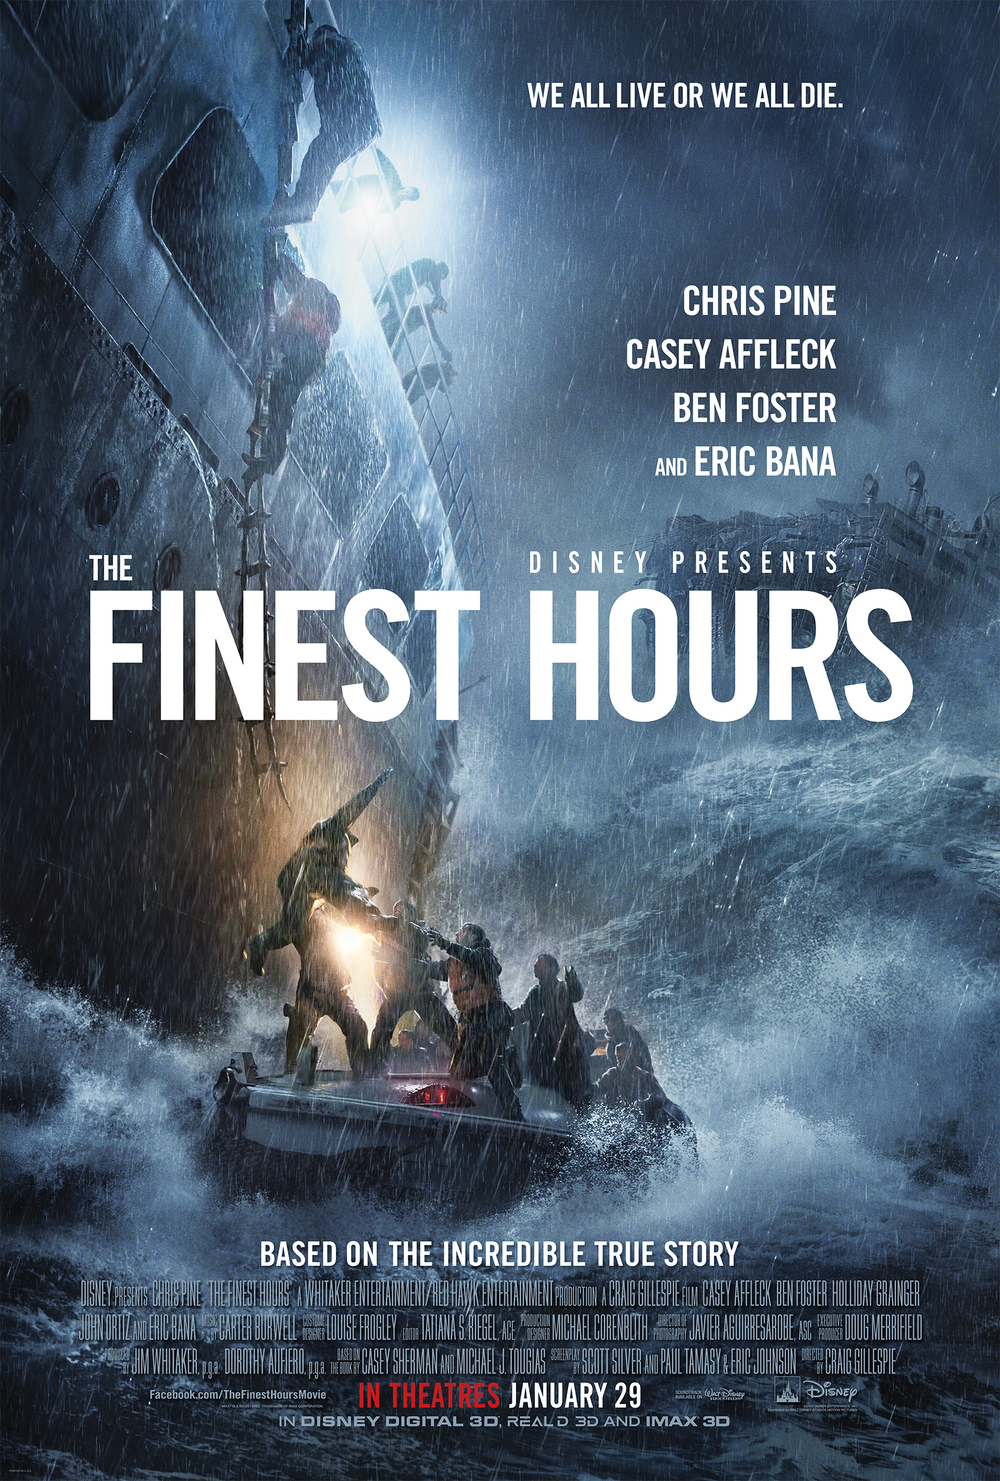 TheFinestHours56422542399f6.jpg